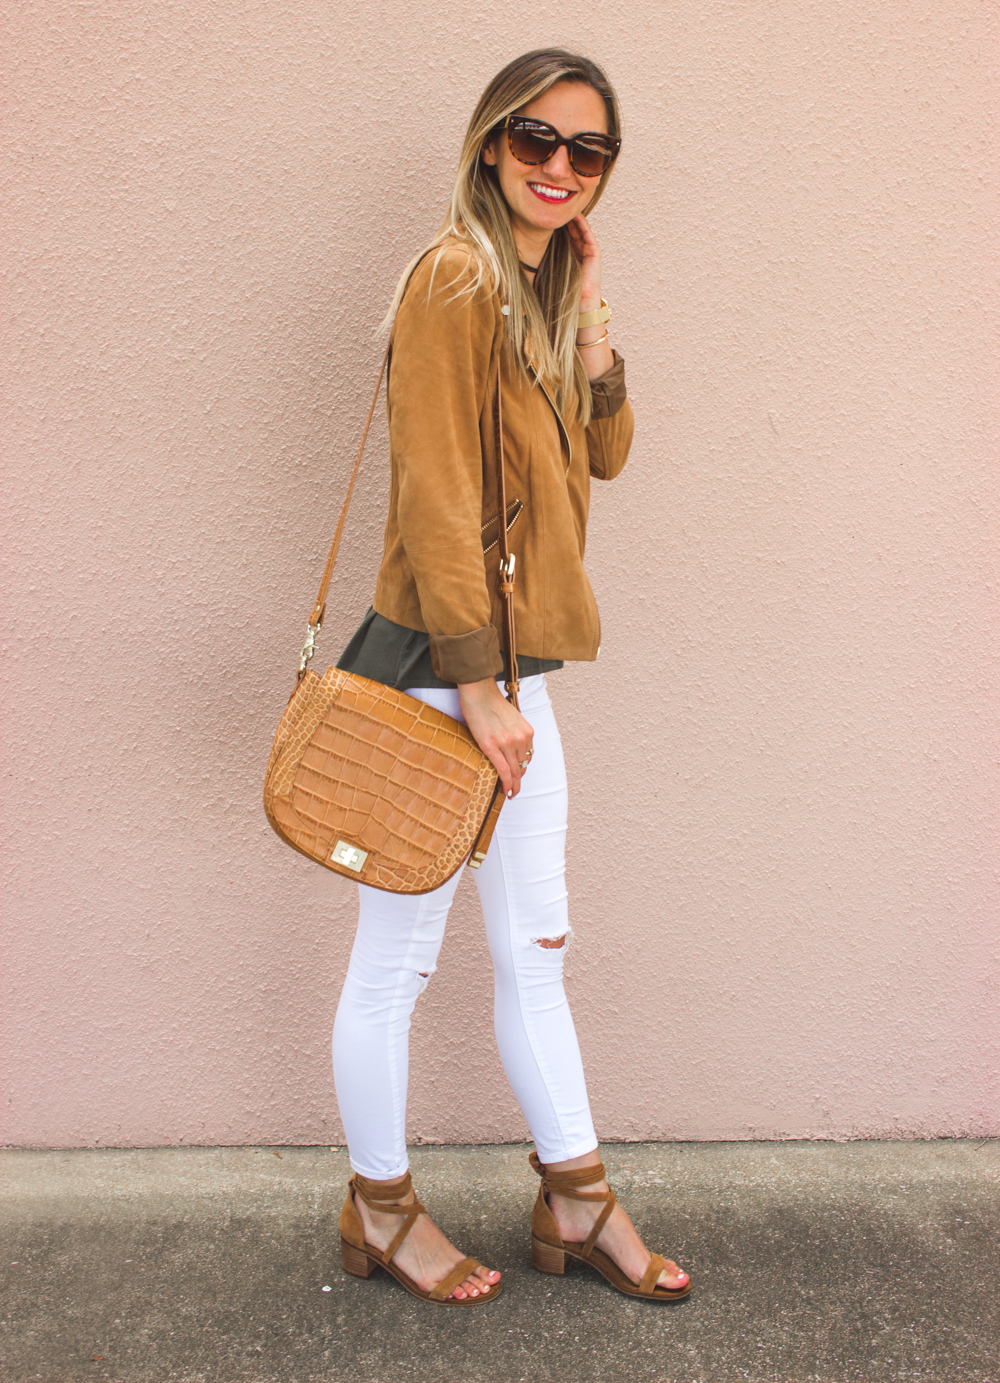 livvyland-blog-olivia-watson-boho-ootd-nordstrom-anniversary-sale-must-haves-what-to-buy-suede-tan-jacket-fall-summer-outfit-cluse-gold-watch-8